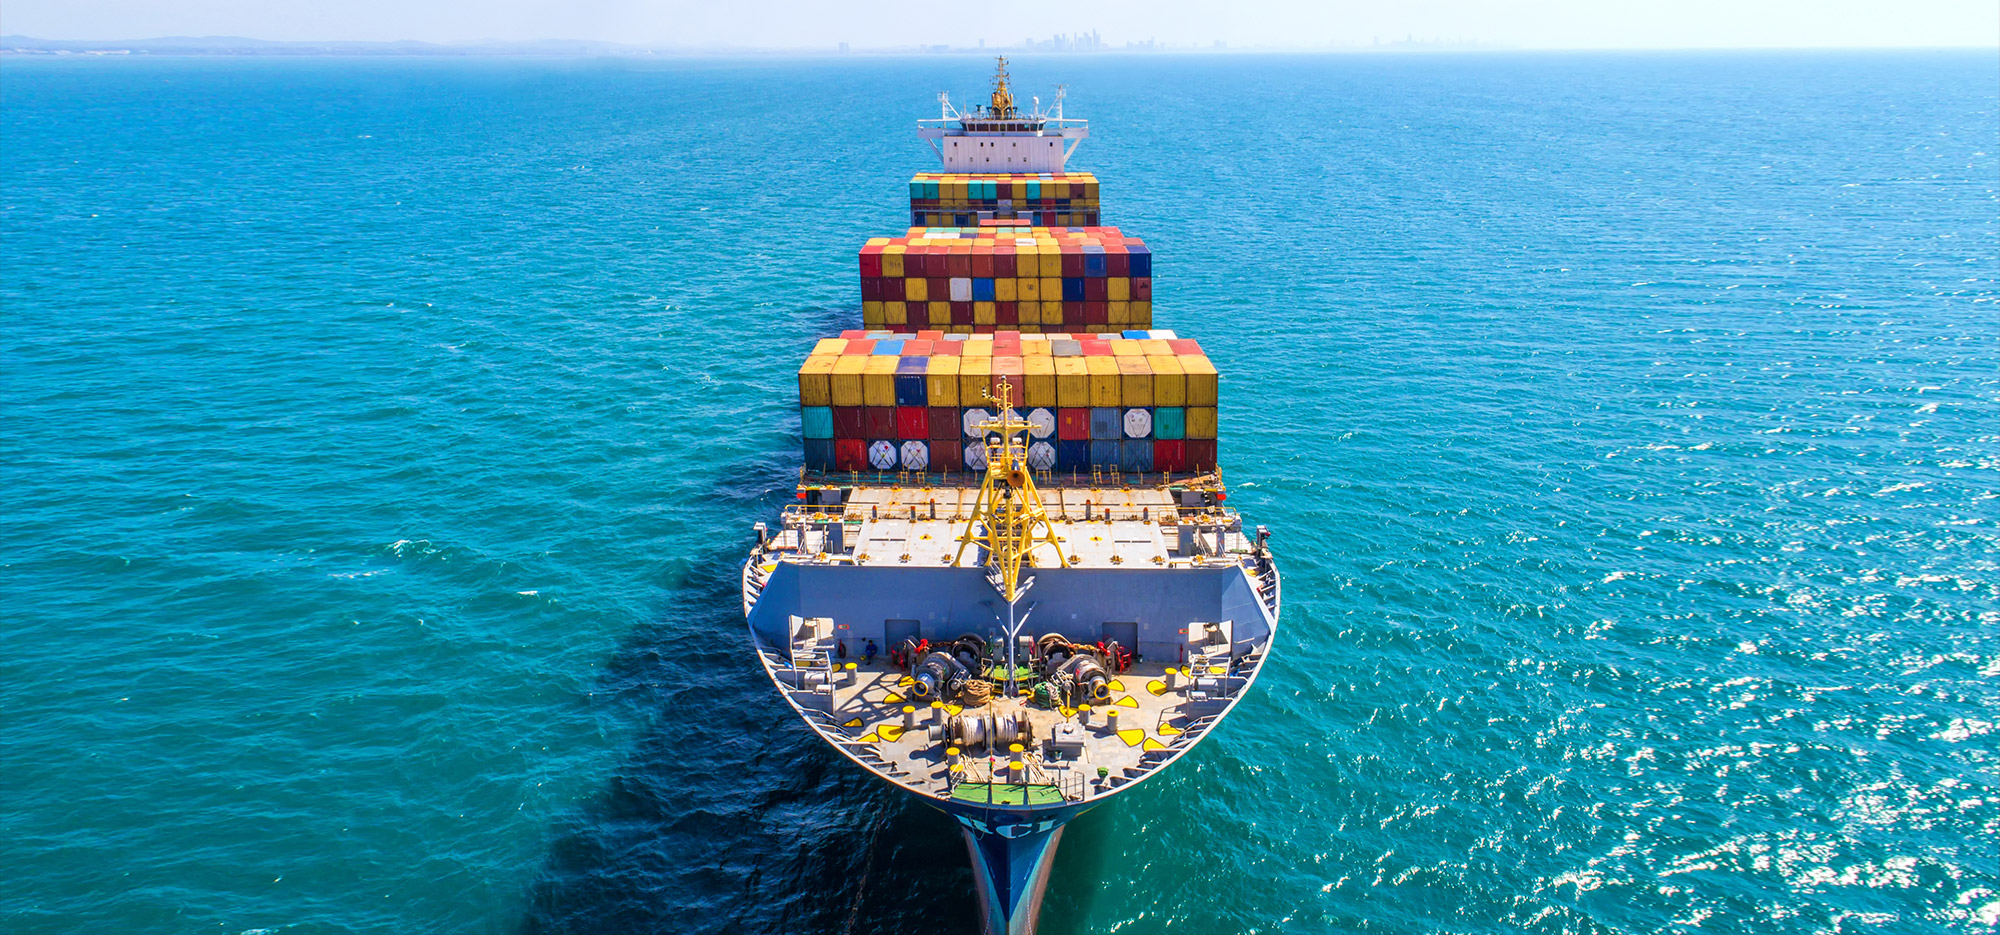 2020 Outlook: 4 Ways the Global Economy Will Affect Shipping & Logistics